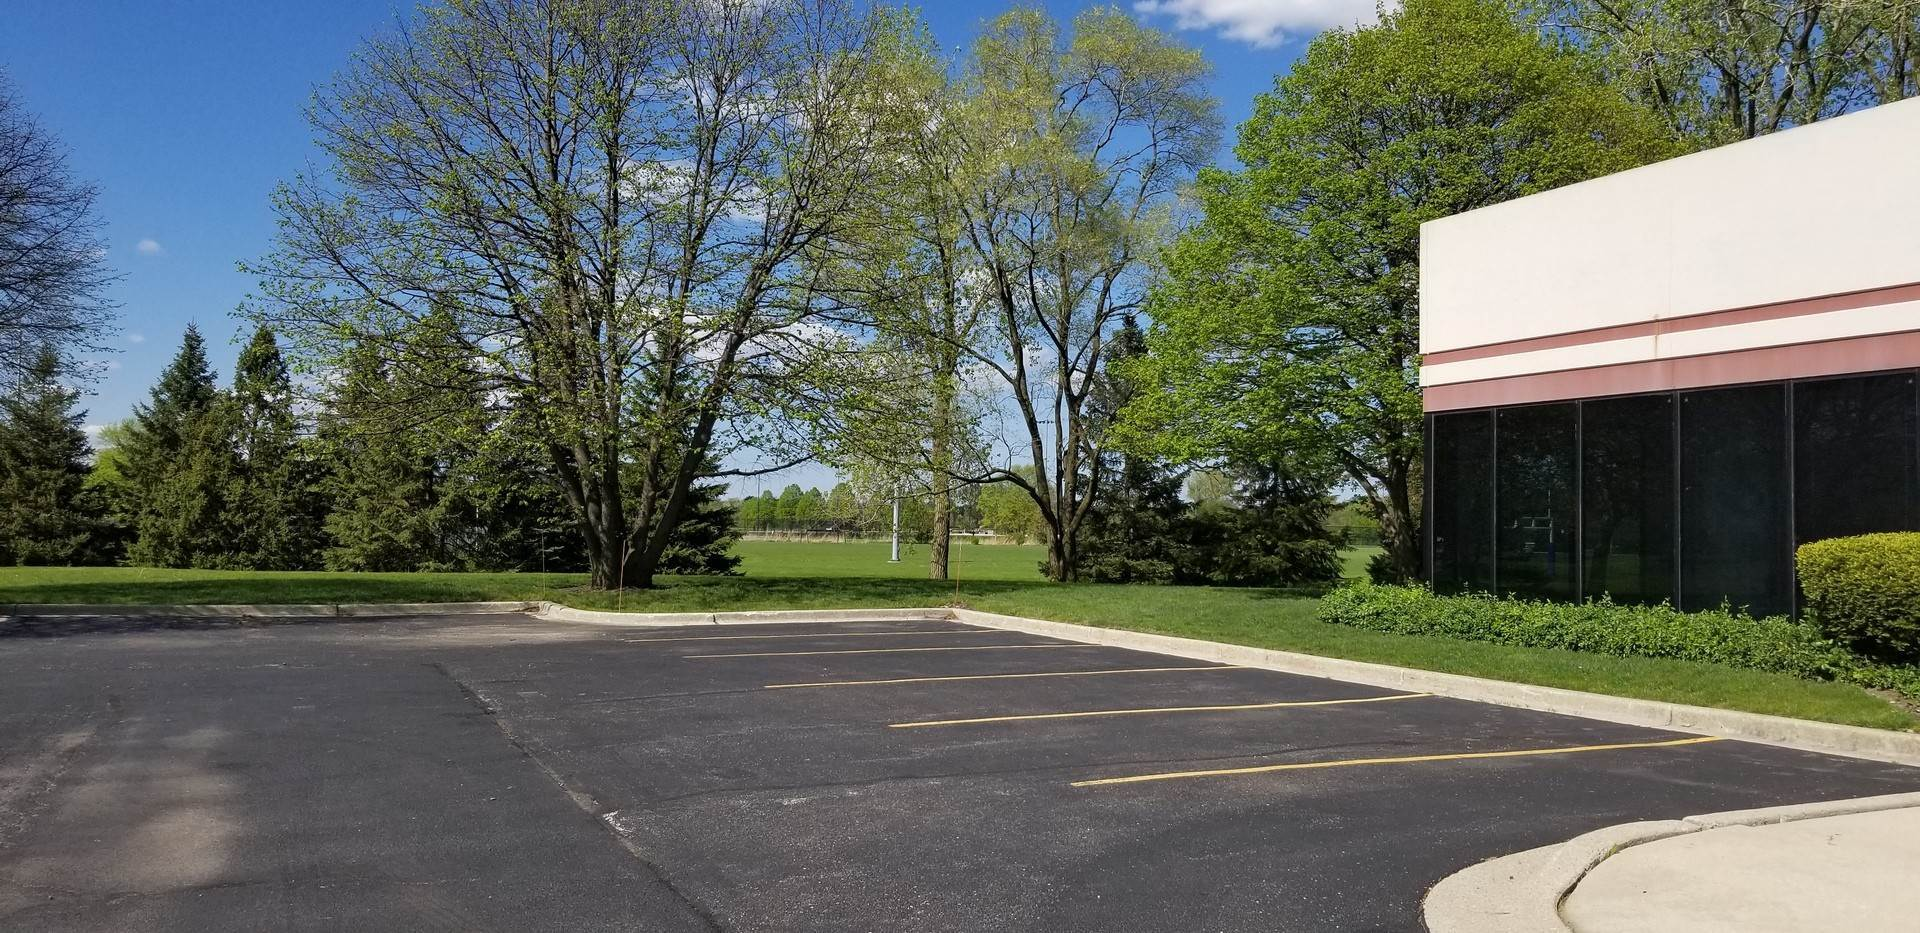 Commercial for Sale at 5400 Patton Drive Lisle, Illinois 60532 United States